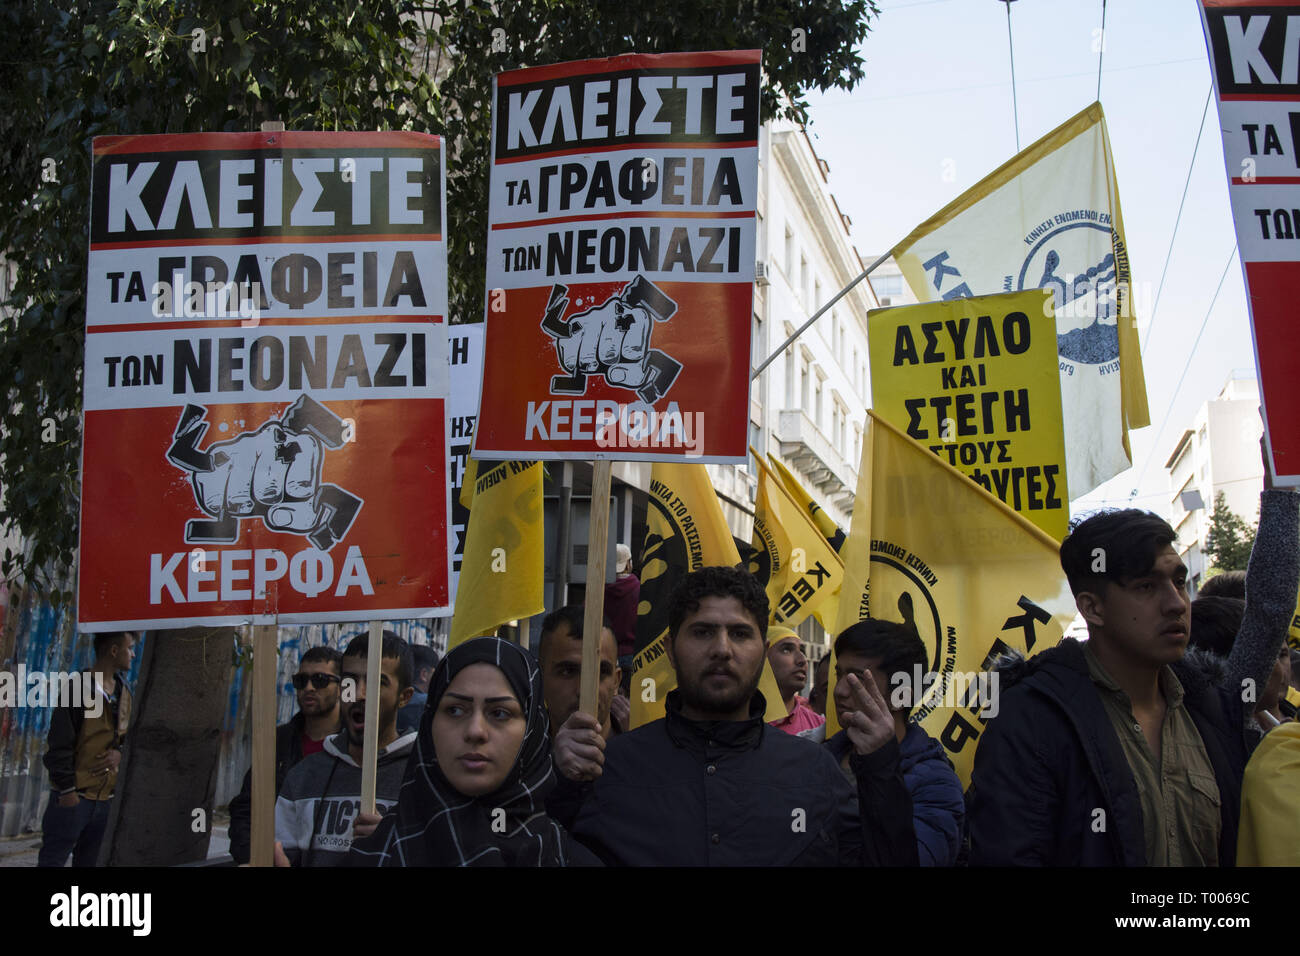 Athens, Greece. 16th Mar, 2019. Migrants and refugees hold placards and shout slogans against racism and closed borders as well as against the greek neo-Nazi party Golden Dawn, currently on trial with accusations such as criminal organization, murder, possession of weapons and racist violence. Leftist and anti-racist organizations staged a rally on the occasion of the International Day against racism to demonstrate against discrimination and racist policies and behaviours. Credit: Nikolas Georgiou/ZUMA Wire/Alamy Live News Stock Photo